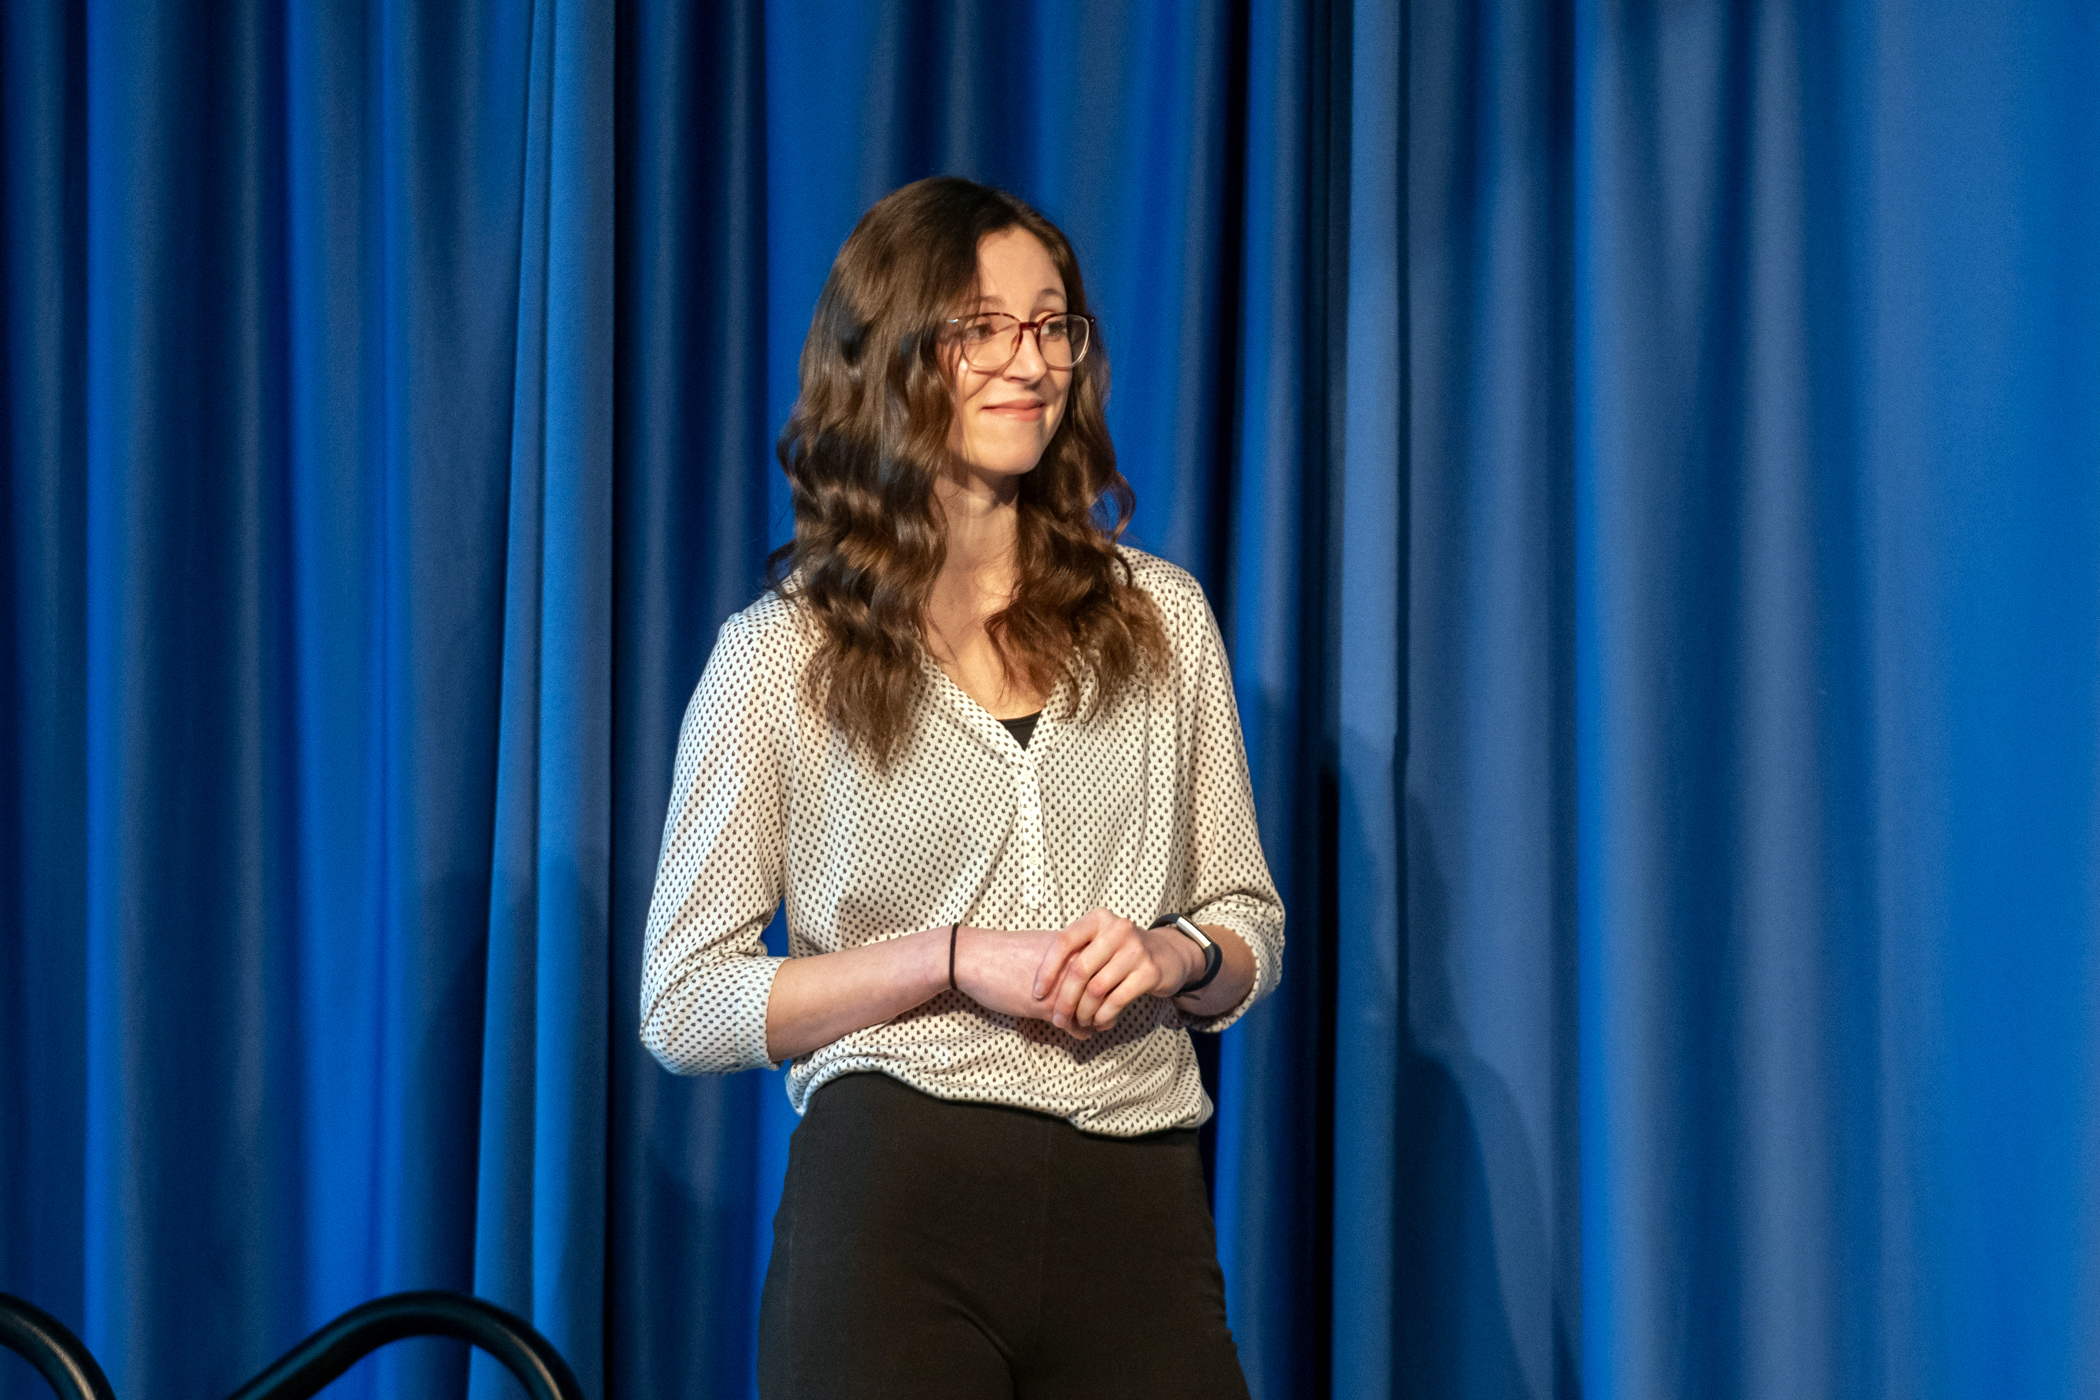 Rachel Phinney at 3MT Competition